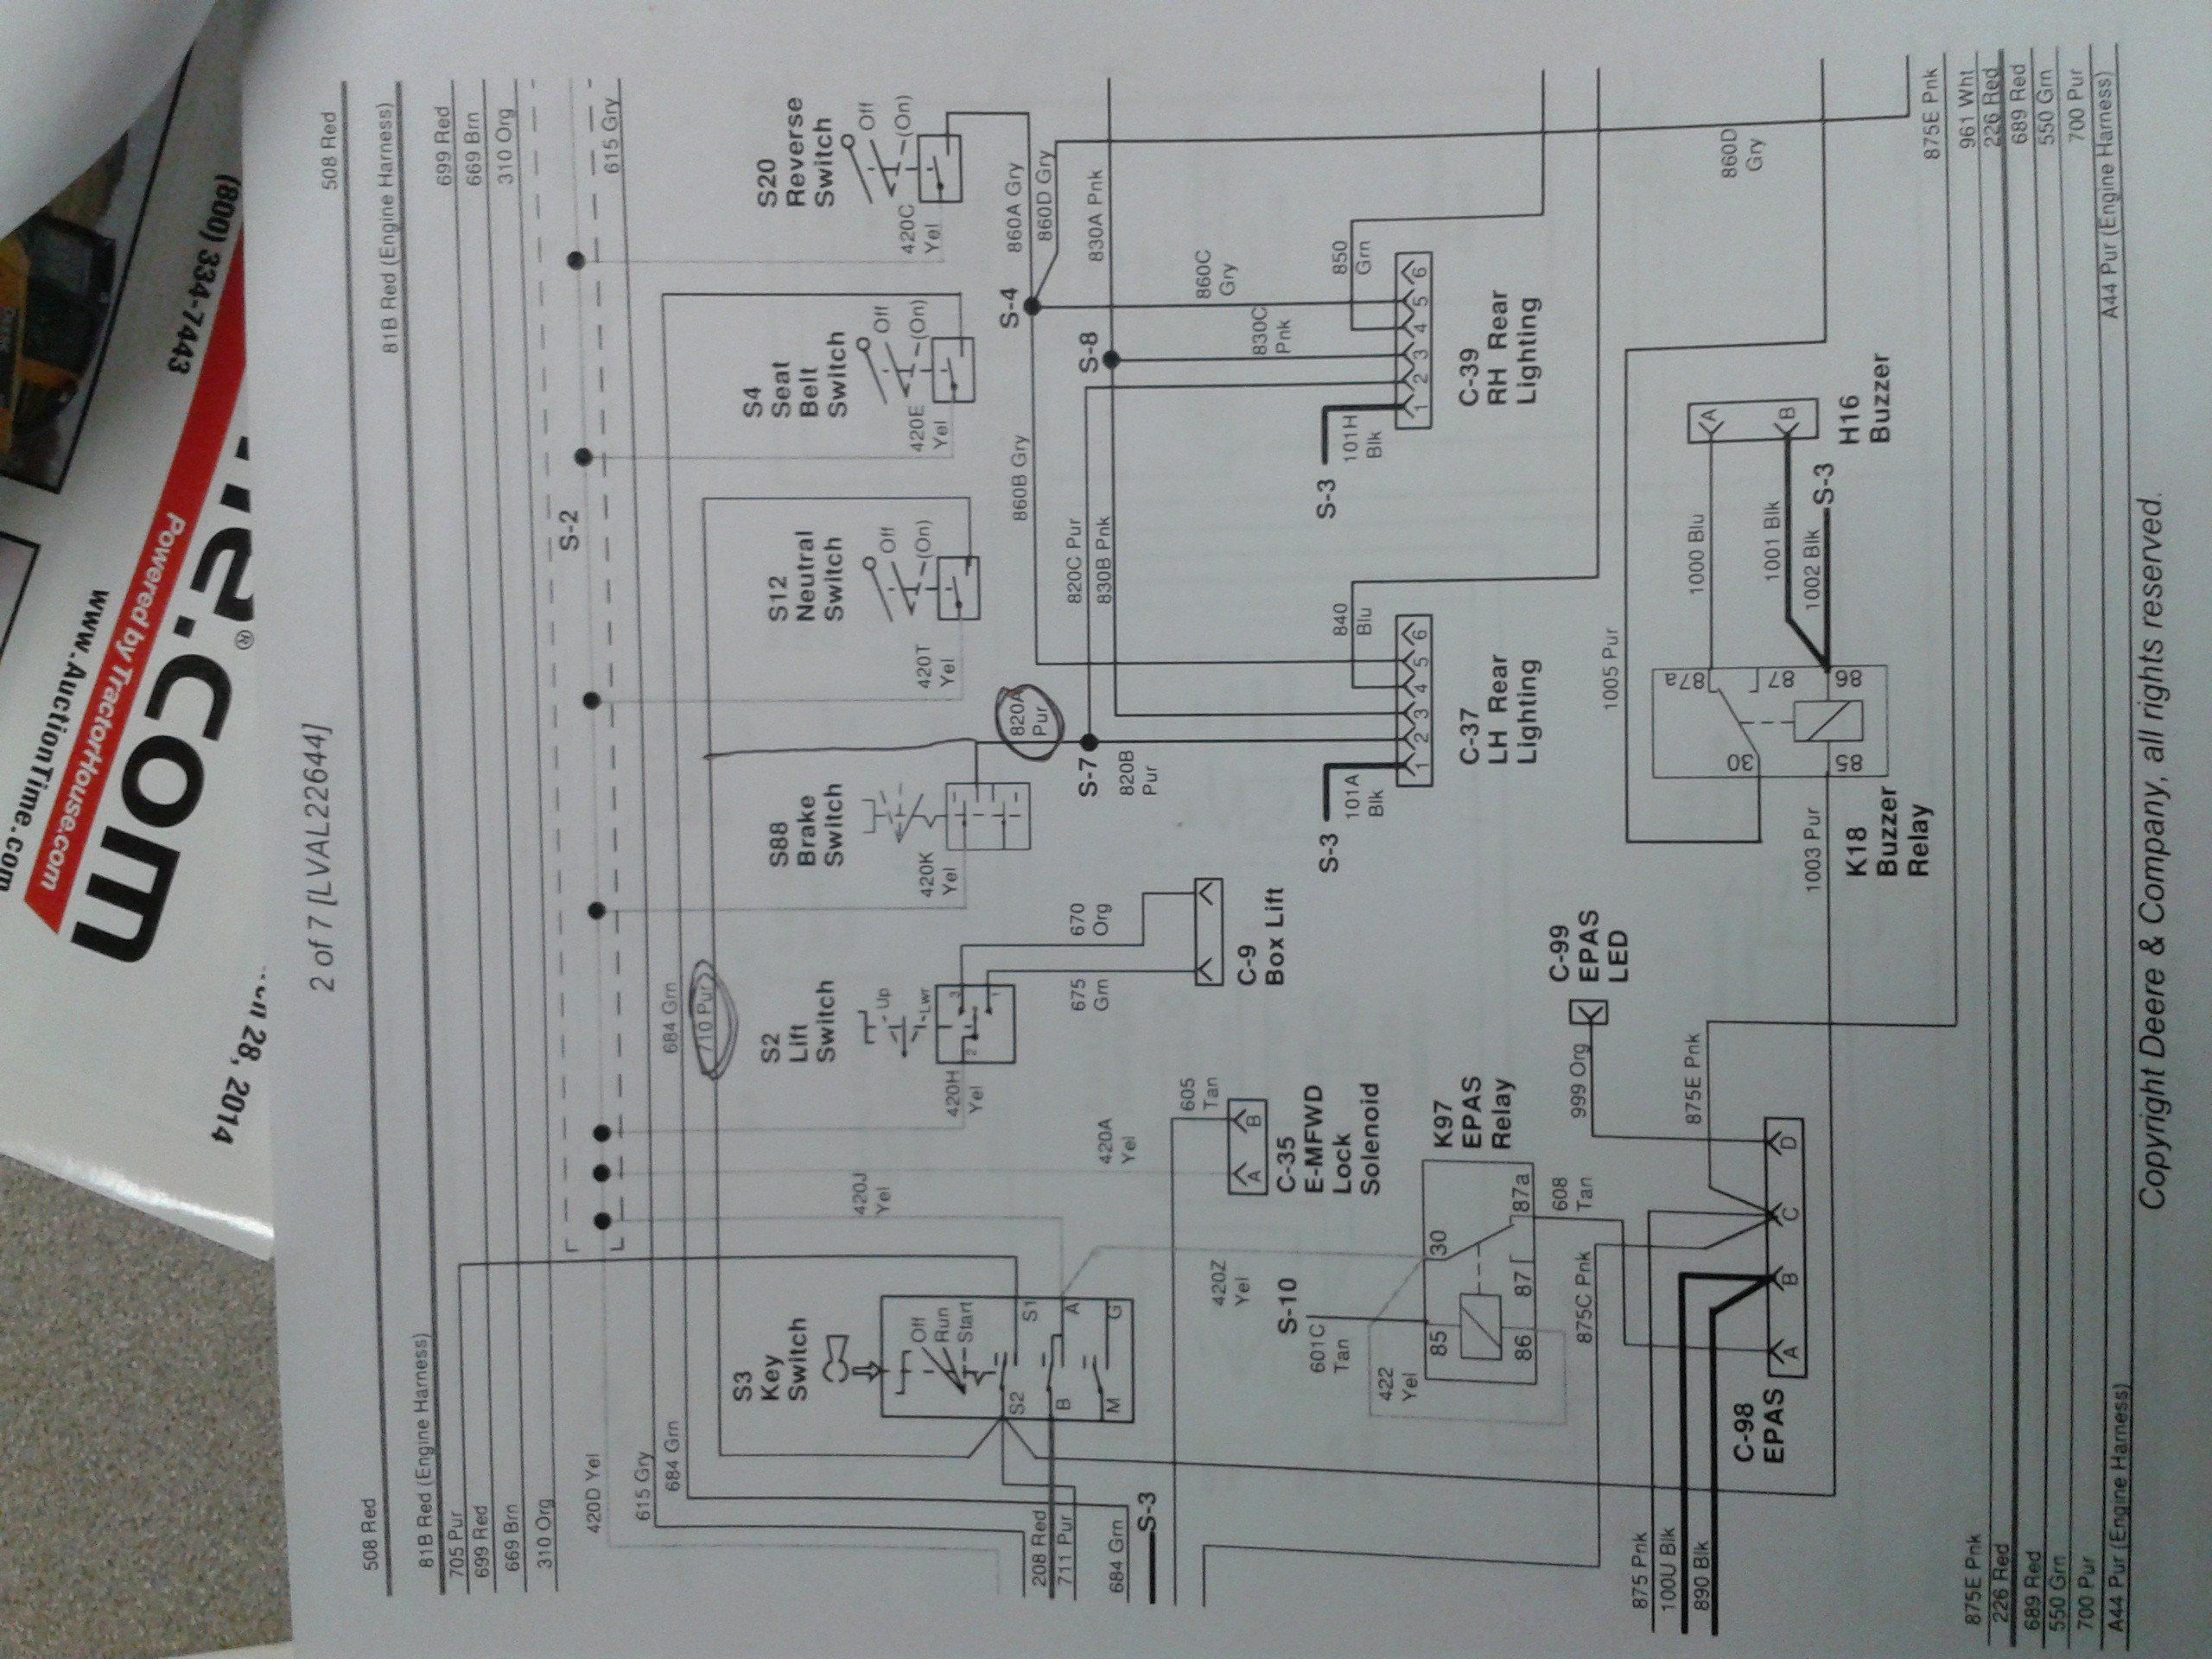 John Deere M665 Wiring Schematics diagram for ignition ... on john deere 2355 wiring diagram, john deere 180 wiring diagram, john deere lx277 wiring diagram, john deere 332 wiring diagram, john deere 757 engine diagram, john deere 455 wiring diagram, john deere lt166 wiring diagram, john deere 5103 wiring diagram,